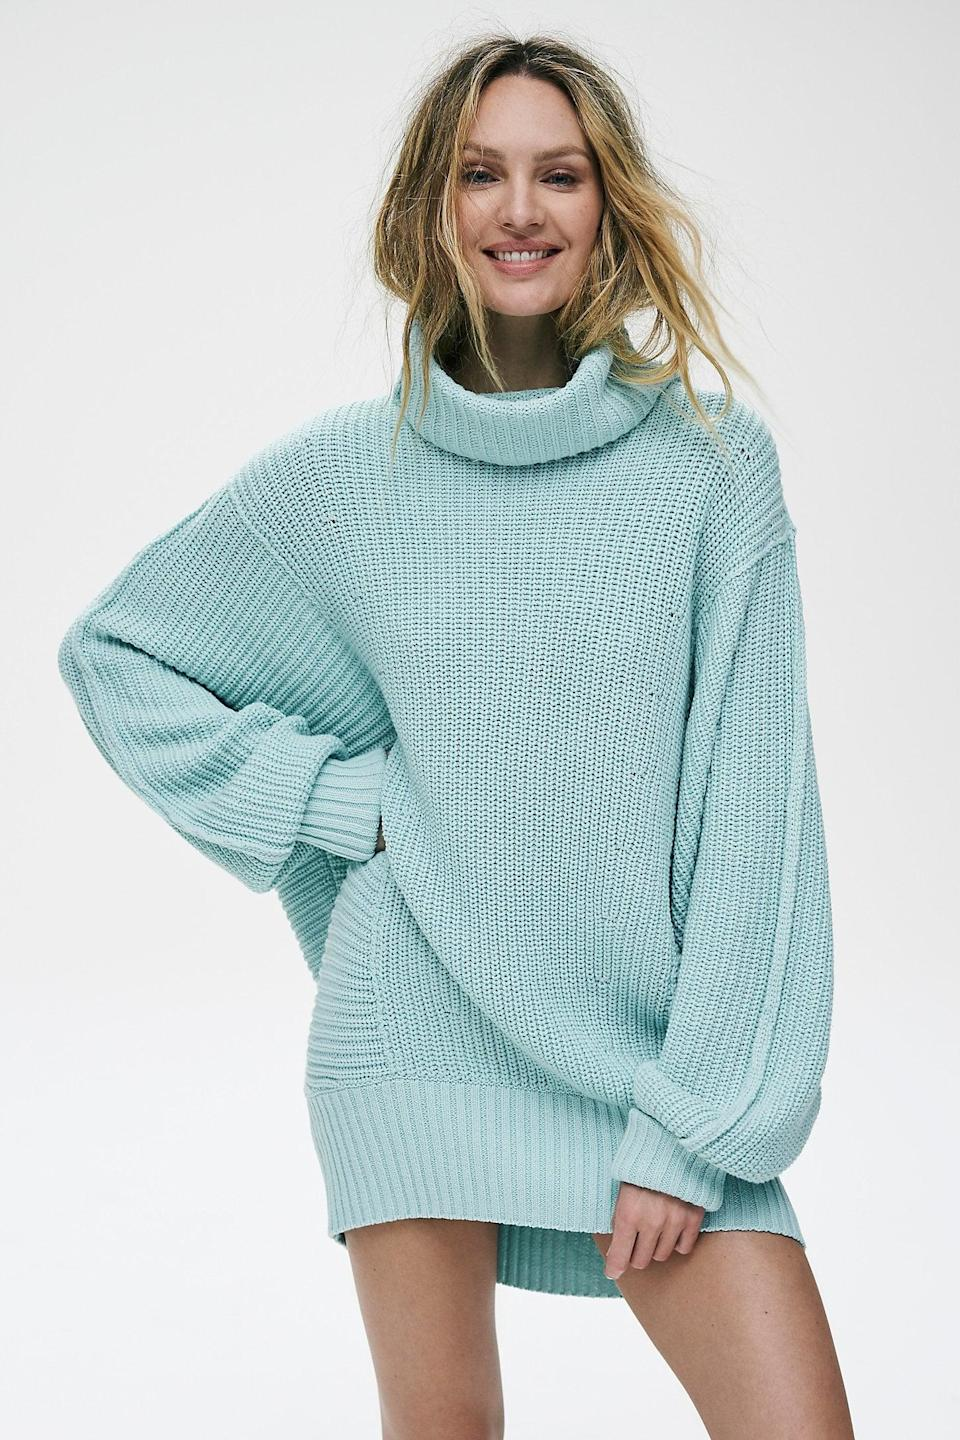 """<p>Get them this <a href=""""https://www.popsugar.com/buy/Cocoa-Sweater-527159?p_name=Cocoa%20Sweater&retailer=freepeople.com&pid=527159&price=148&evar1=fab%3Aus&evar9=45460327&evar98=https%3A%2F%2Fwww.popsugar.com%2Ffashion%2Fphoto-gallery%2F45460327%2Fimage%2F46978010%2FCocoa-Sweater&list1=shopping%2Cgifts%2Cfree%20people%2Choliday%2Cgift%20guide%2Cgifts%20for%20women&prop13=api&pdata=1"""" class=""""link rapid-noclick-resp"""" rel=""""nofollow noopener"""" target=""""_blank"""" data-ylk=""""slk:Cocoa Sweater"""">Cocoa Sweater</a> ($148) in their favorite color.</p>"""